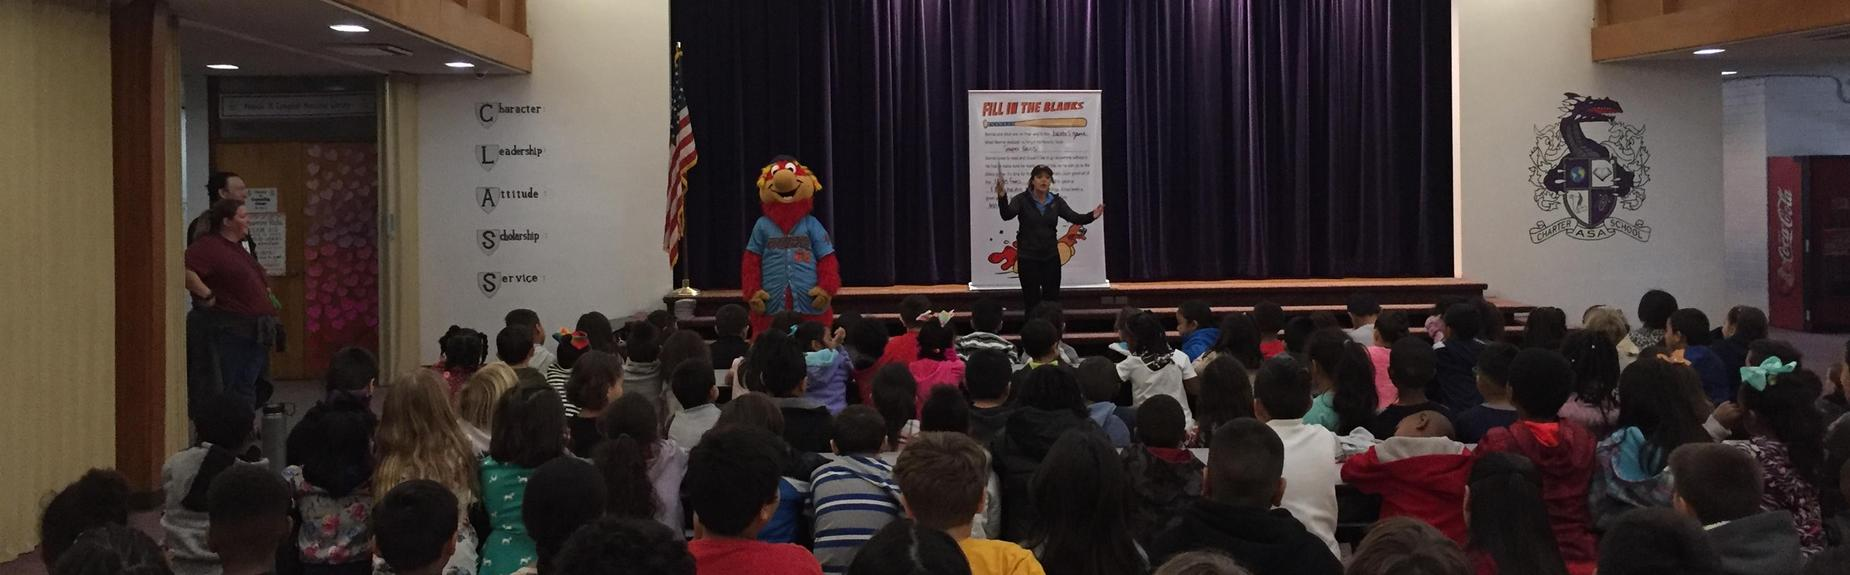 book assembly